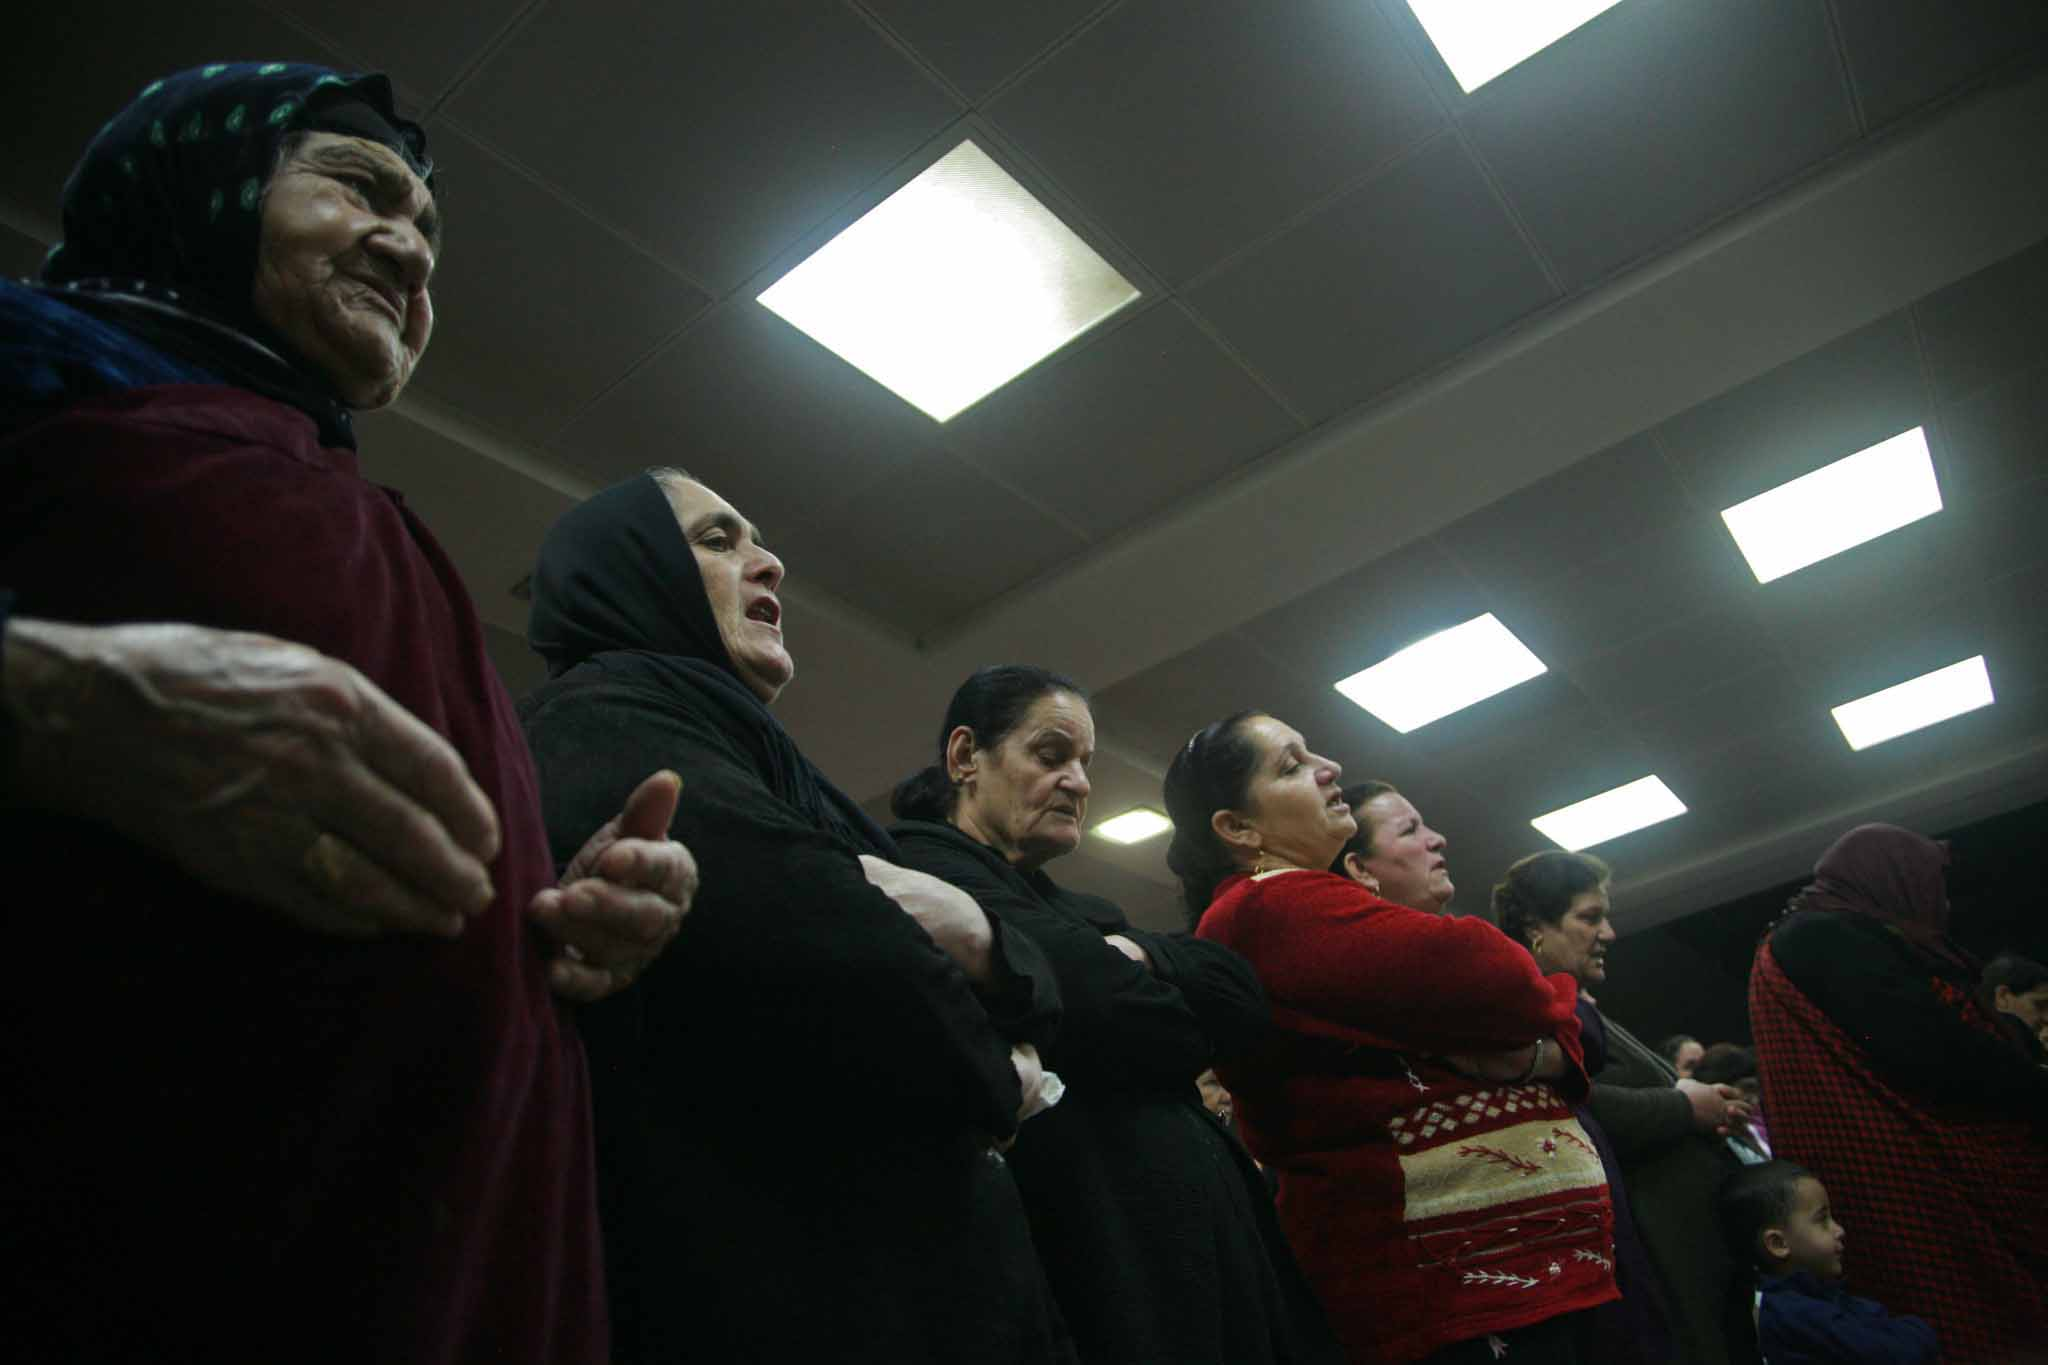 Iraqis pray at mass observed in office complex in Erbil converted to house about 350 Christian families. (Morning Star News)